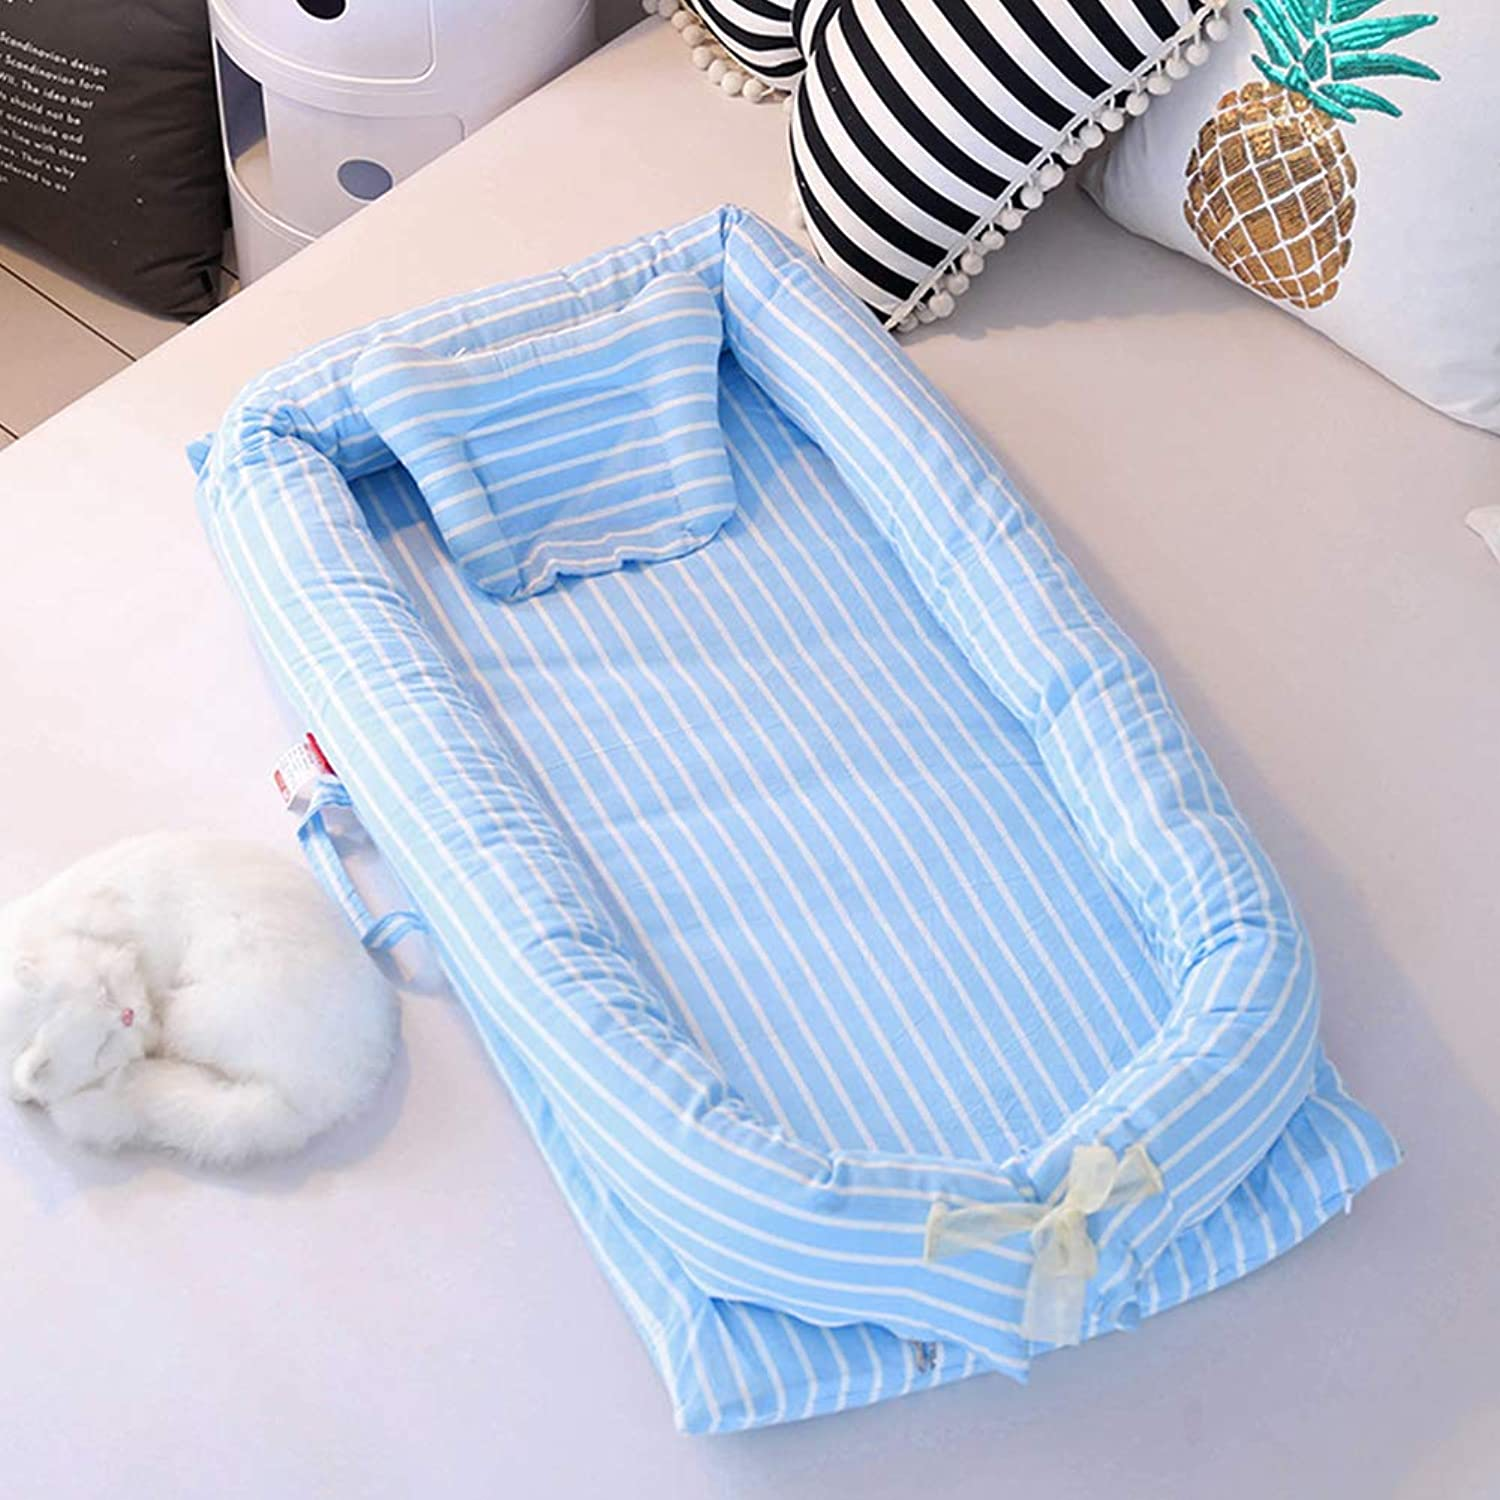 Foldable Baby Travel Crib Net Not Need Installed, Baby Travel Cot Portable Baby Crib, Can Be Lengthened Portable Baby Cots for 0-3 Years Old Baby